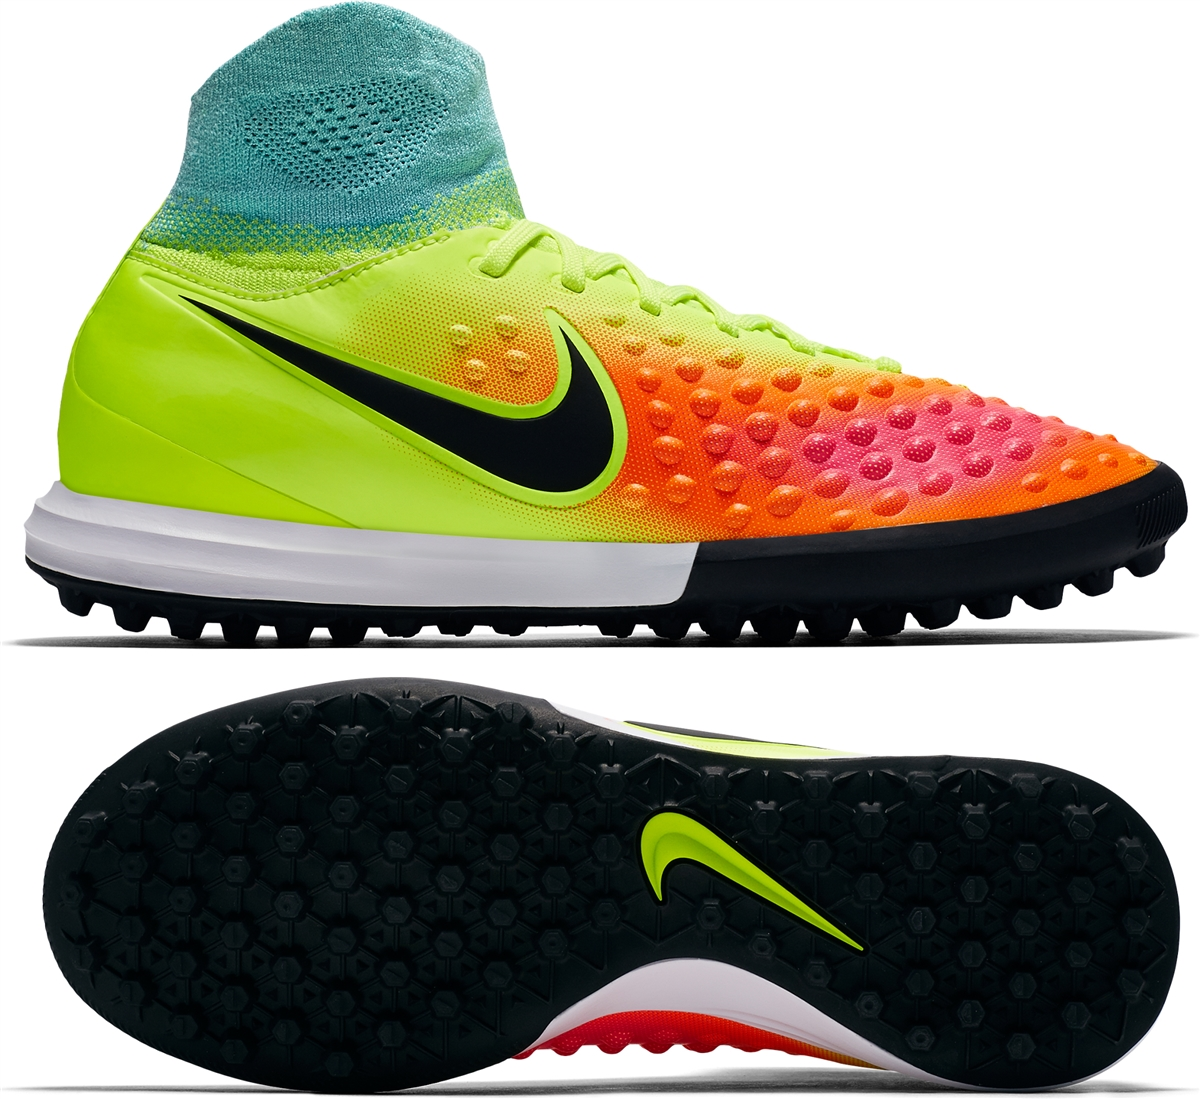 c8eddaca21f7 Nike Youth MagistaX Proximo II TF Turf Soccer Shoes (Volt Black ...